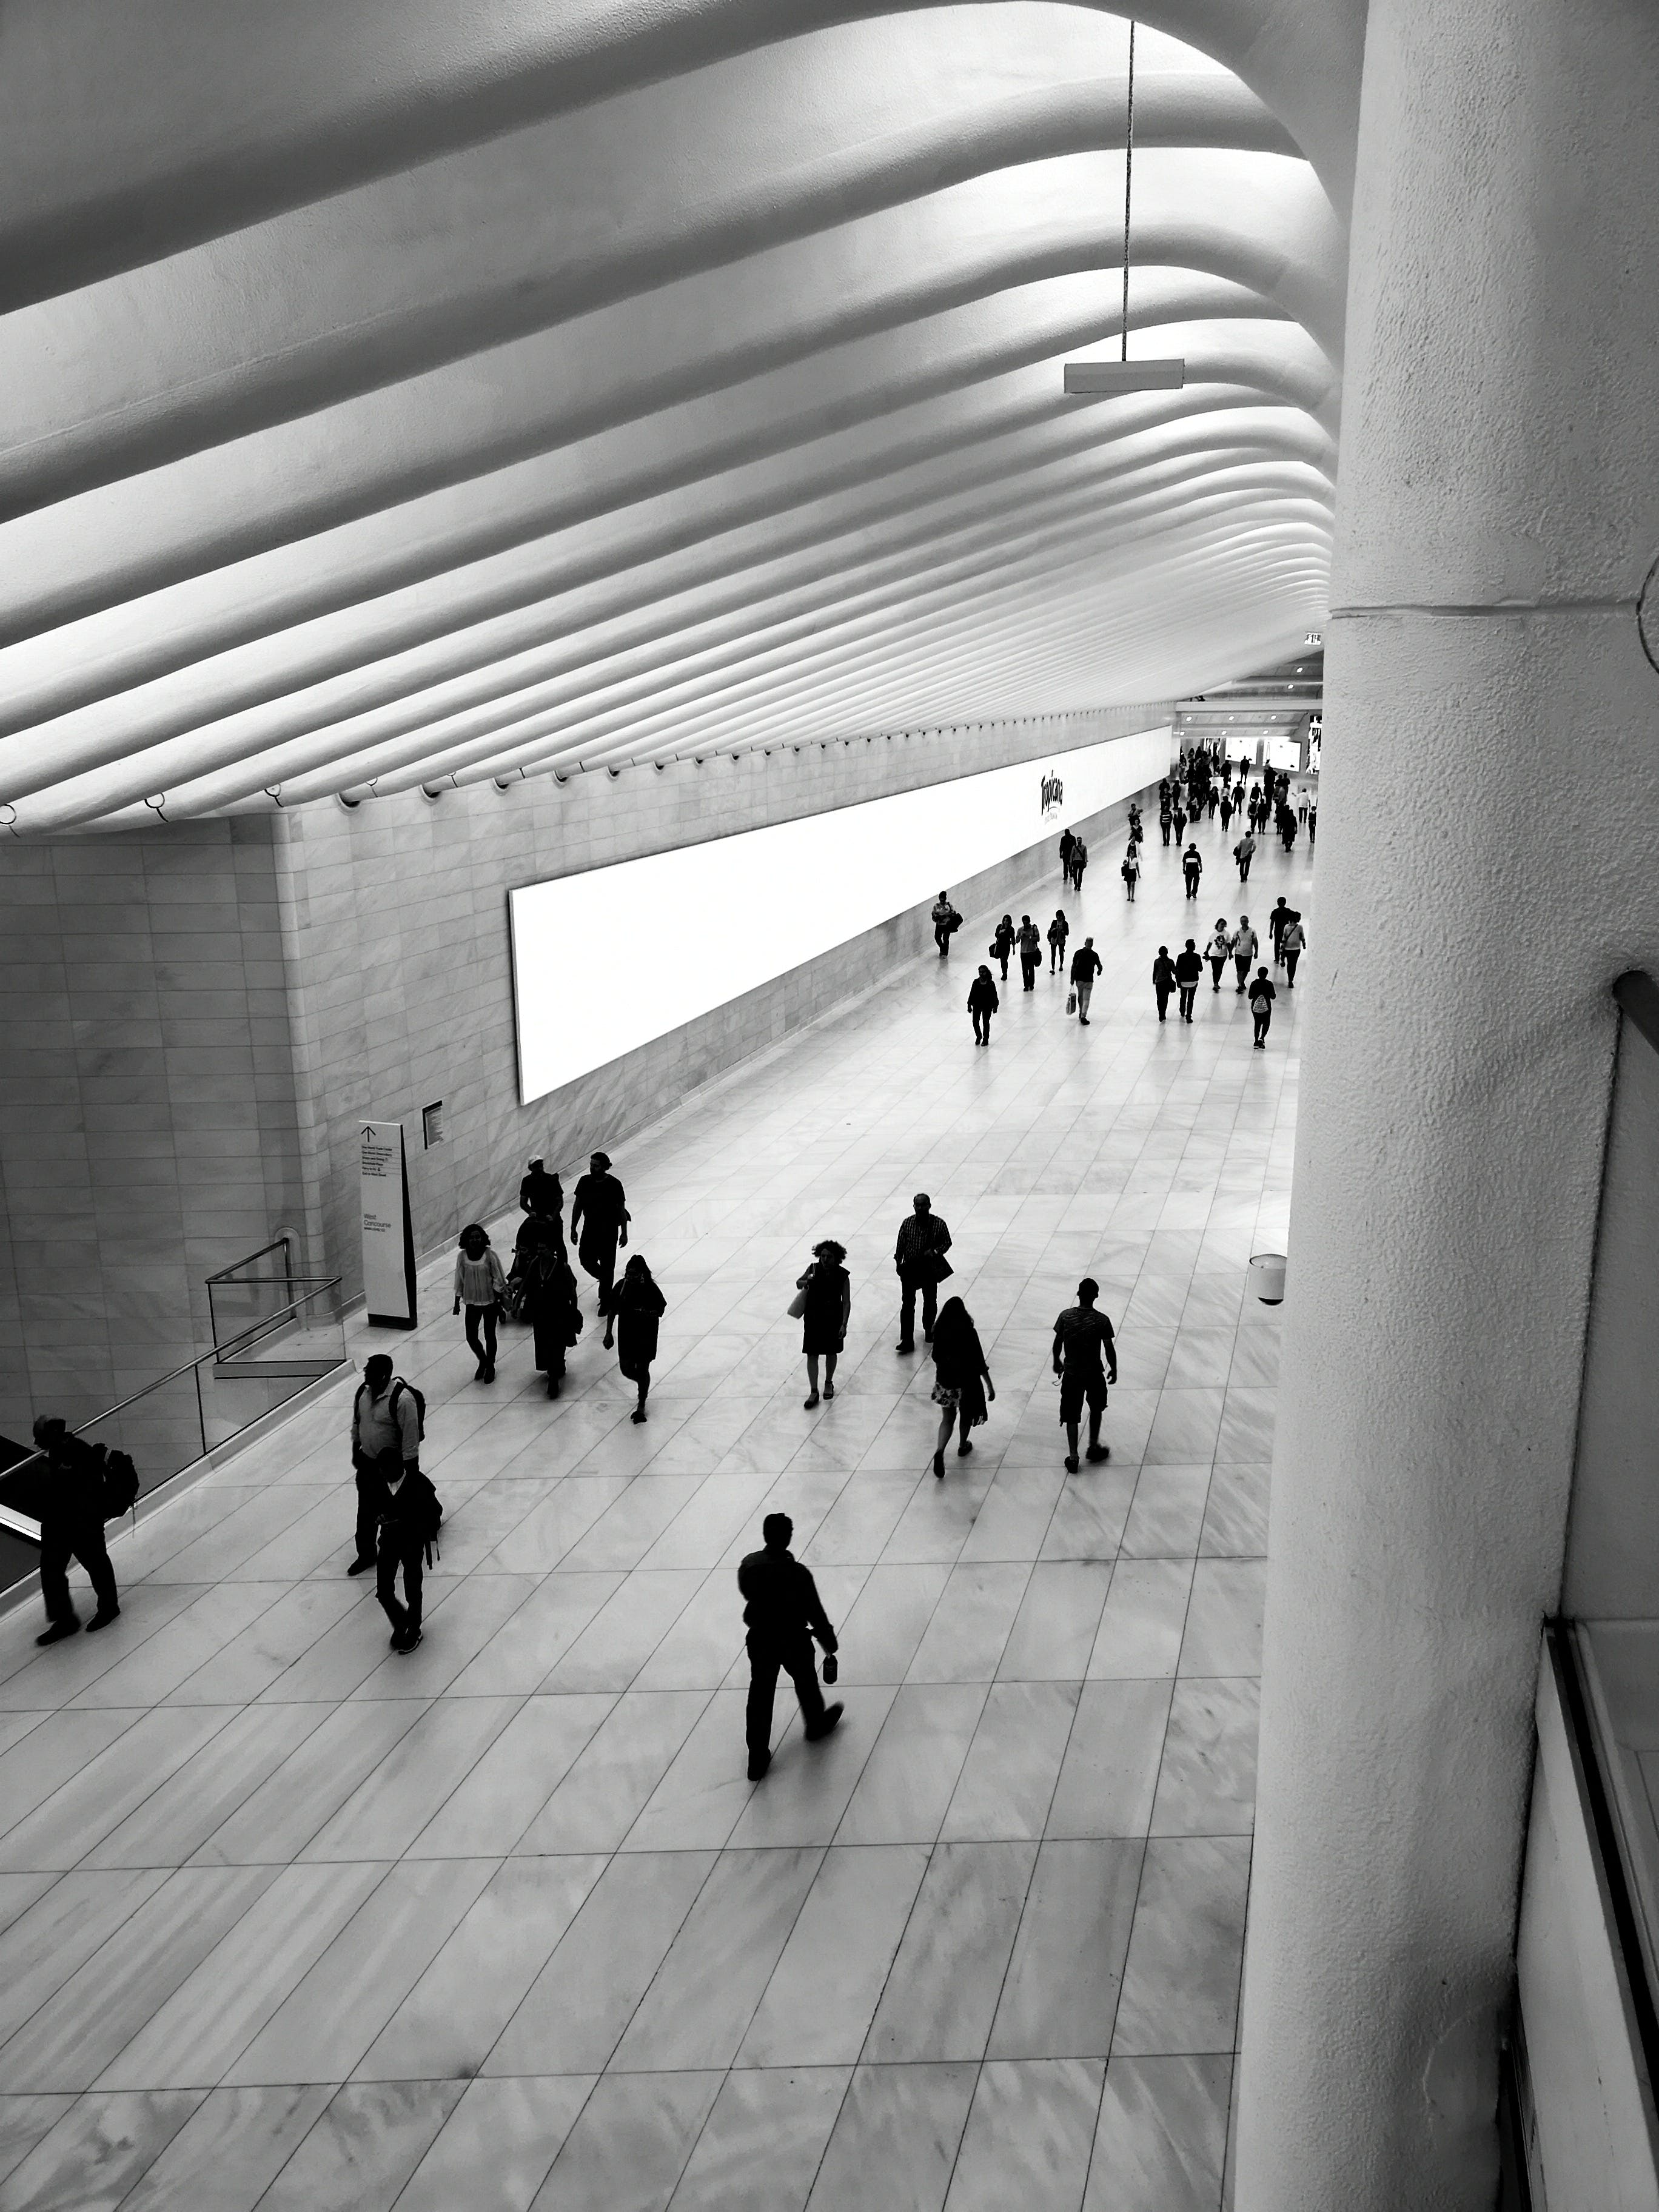 Black and White Photograph of People Walking at the Subway